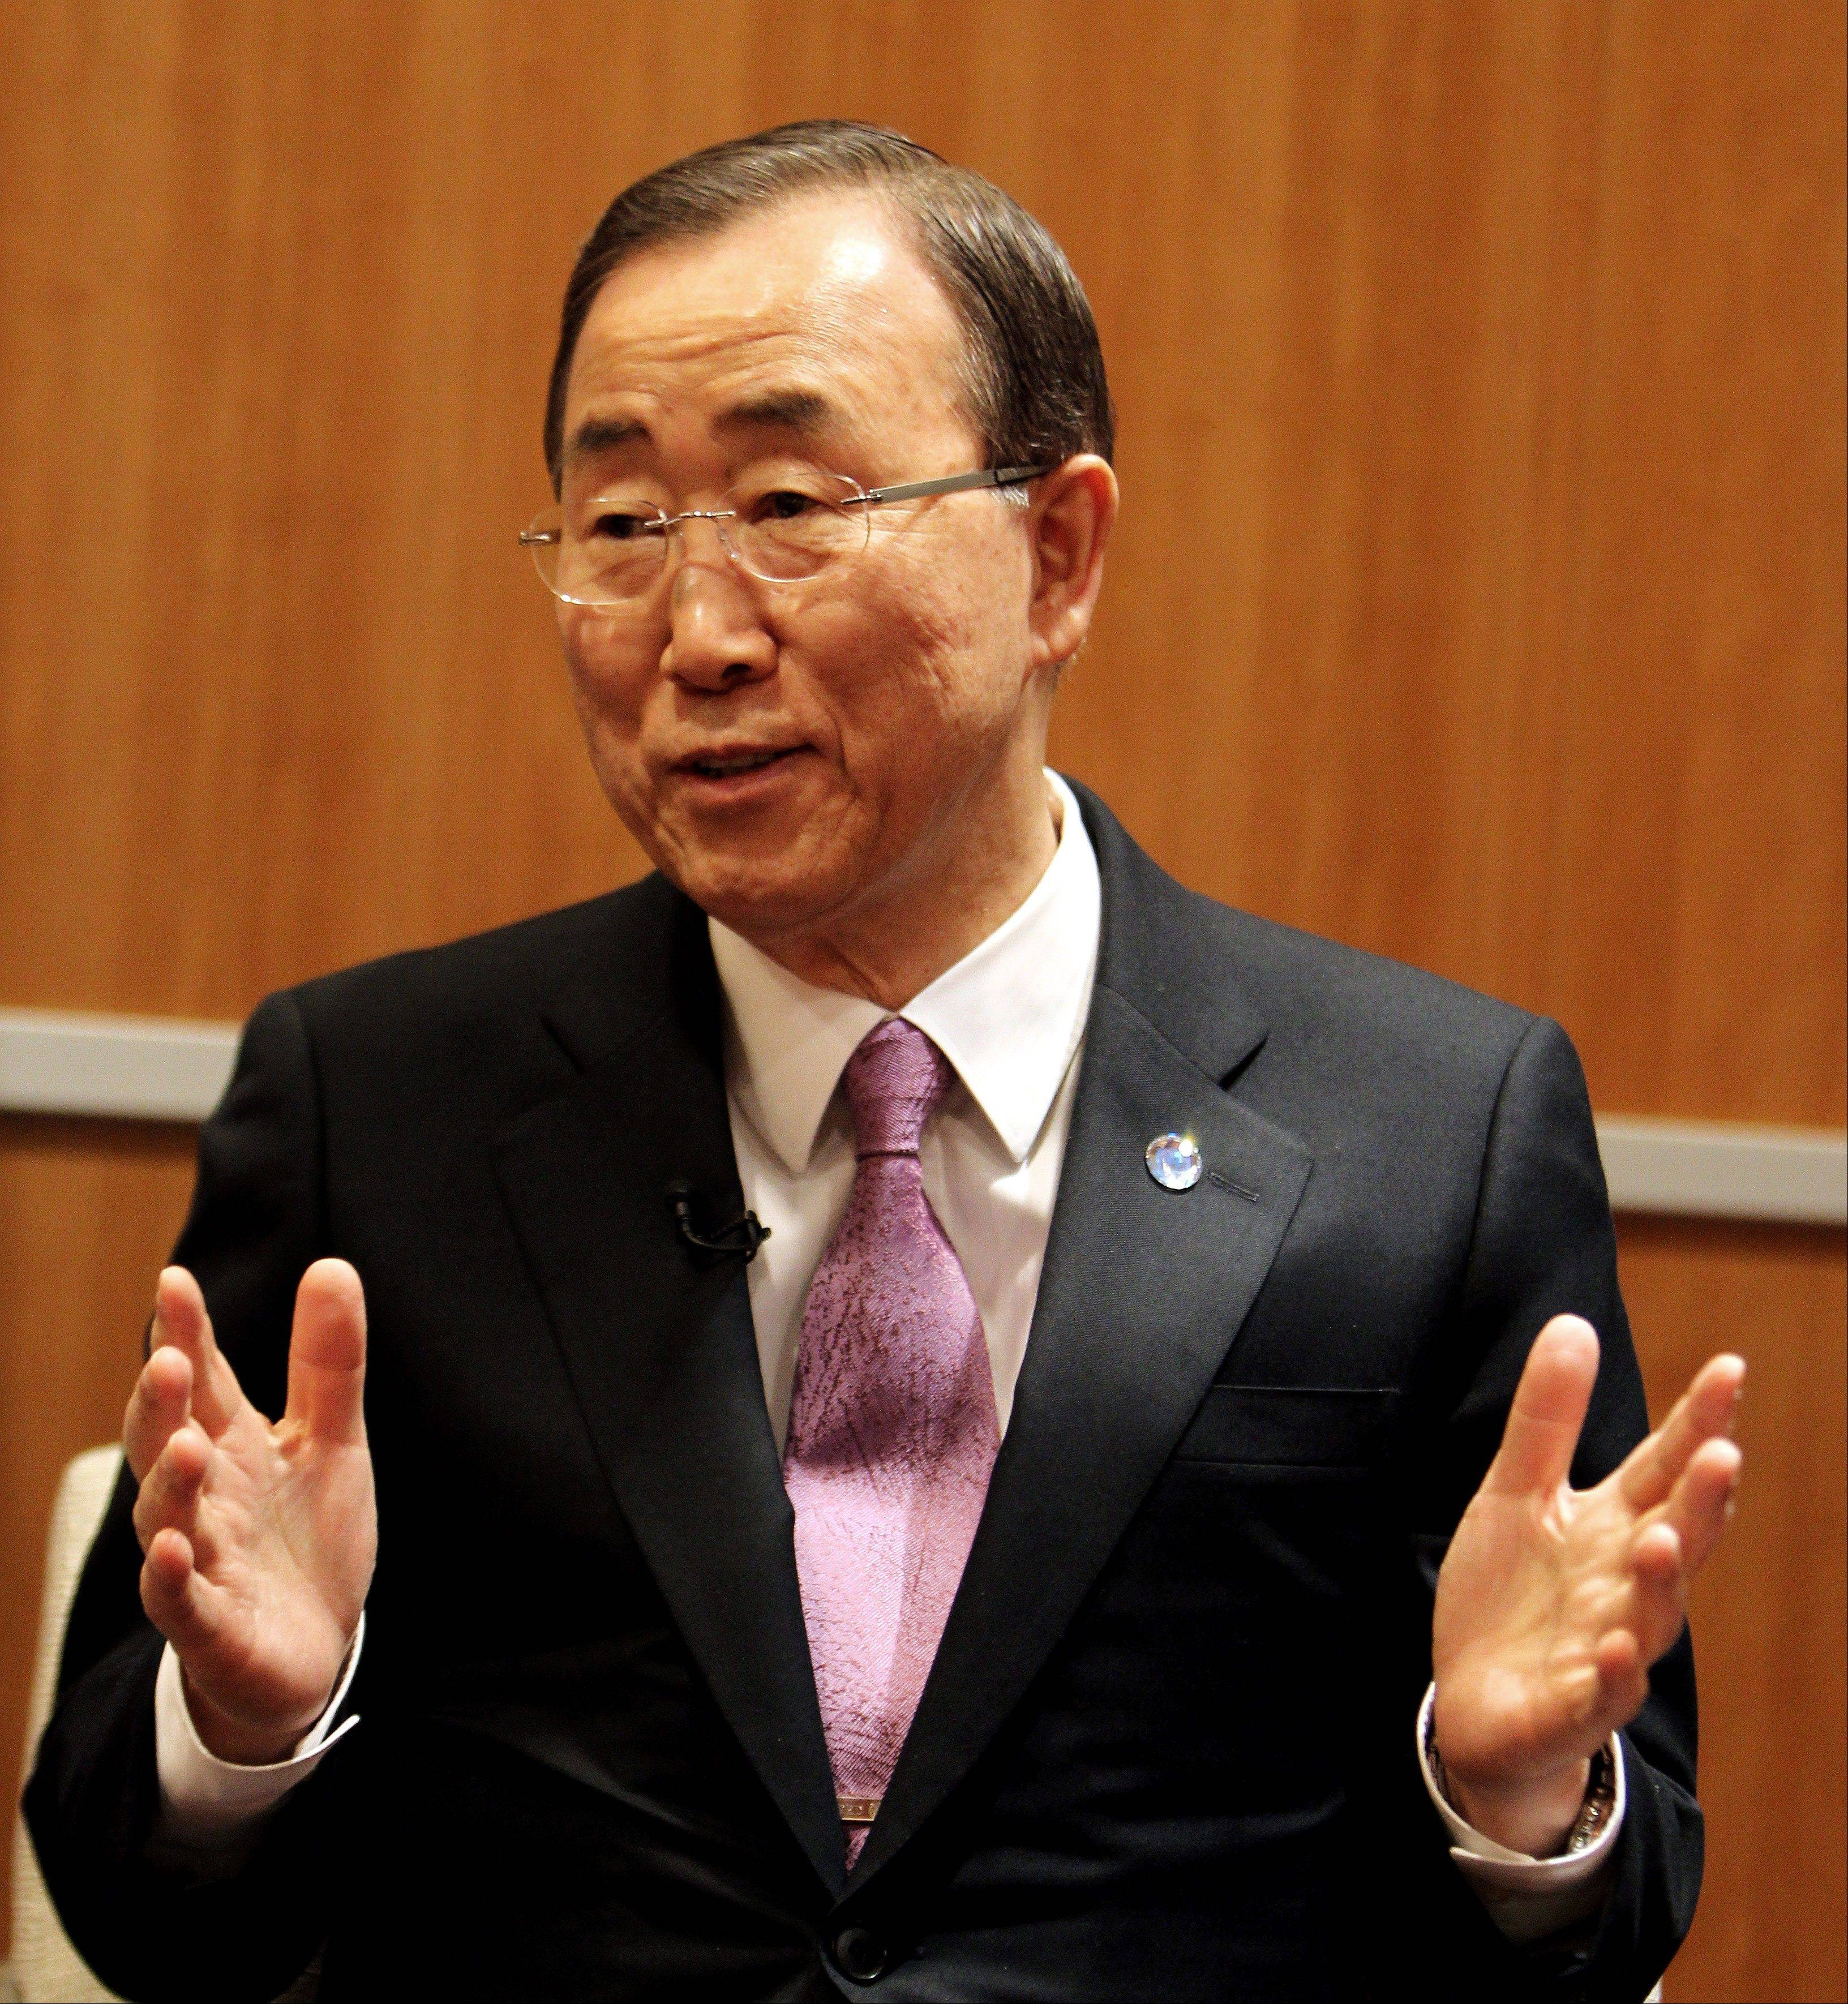 U.N. Secretary-General Ban Ki-moon speaks to a journalist Wednesday during an exclusive interview with The Associated Press. Ban has hinted that he would not favor an asylum deal for Syrian President Bashir Assad as a way to end the country�s civil war.